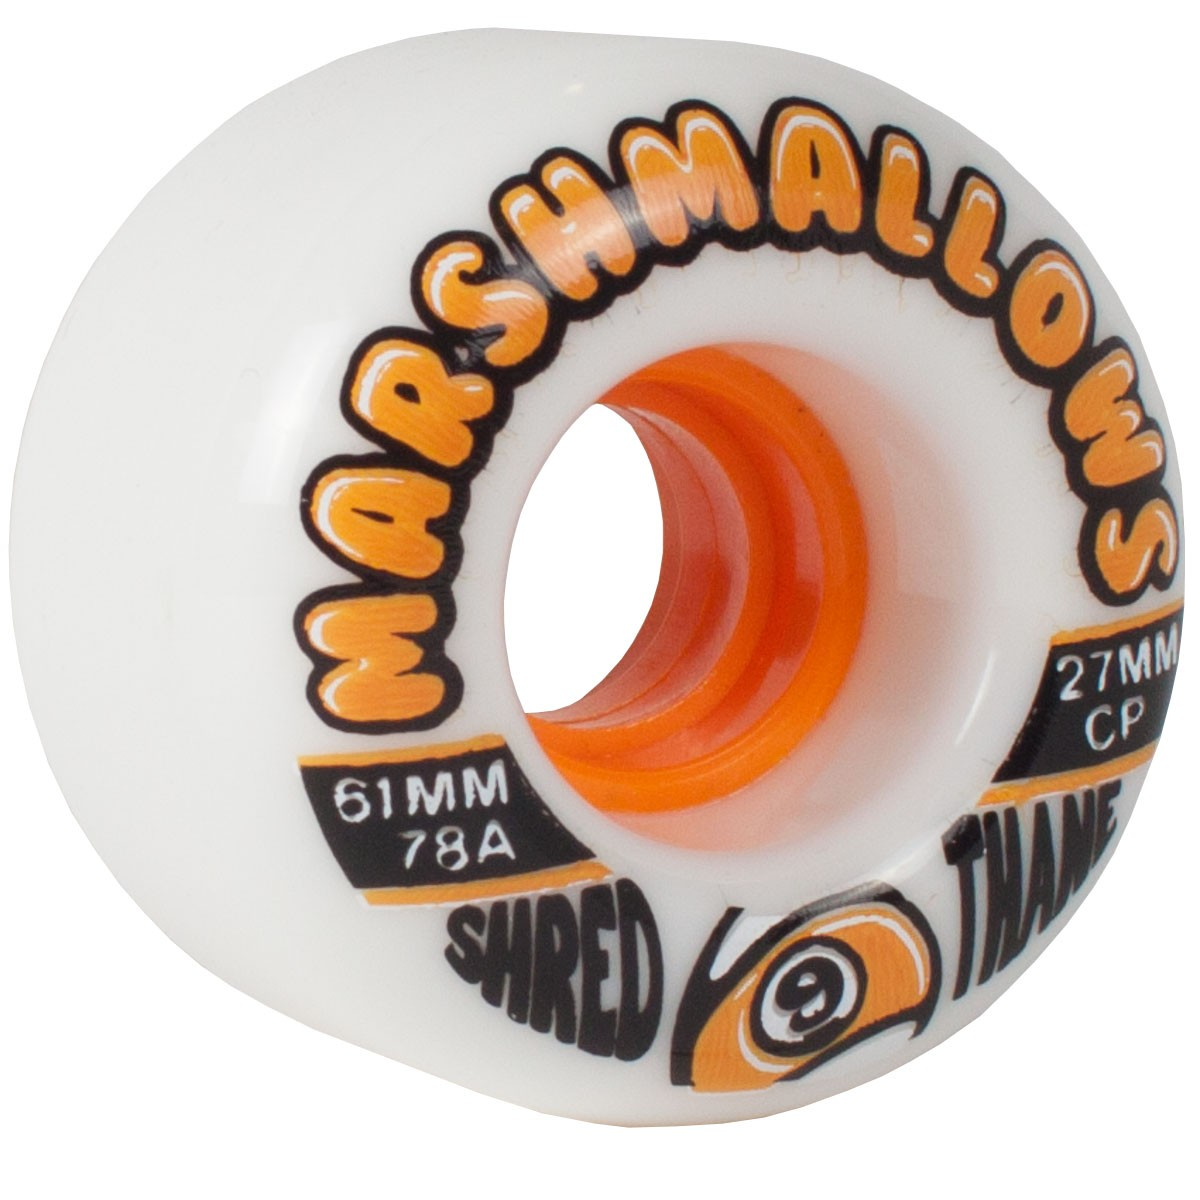 Sector 9 Marshmallows Longboard Wheels - 61mm